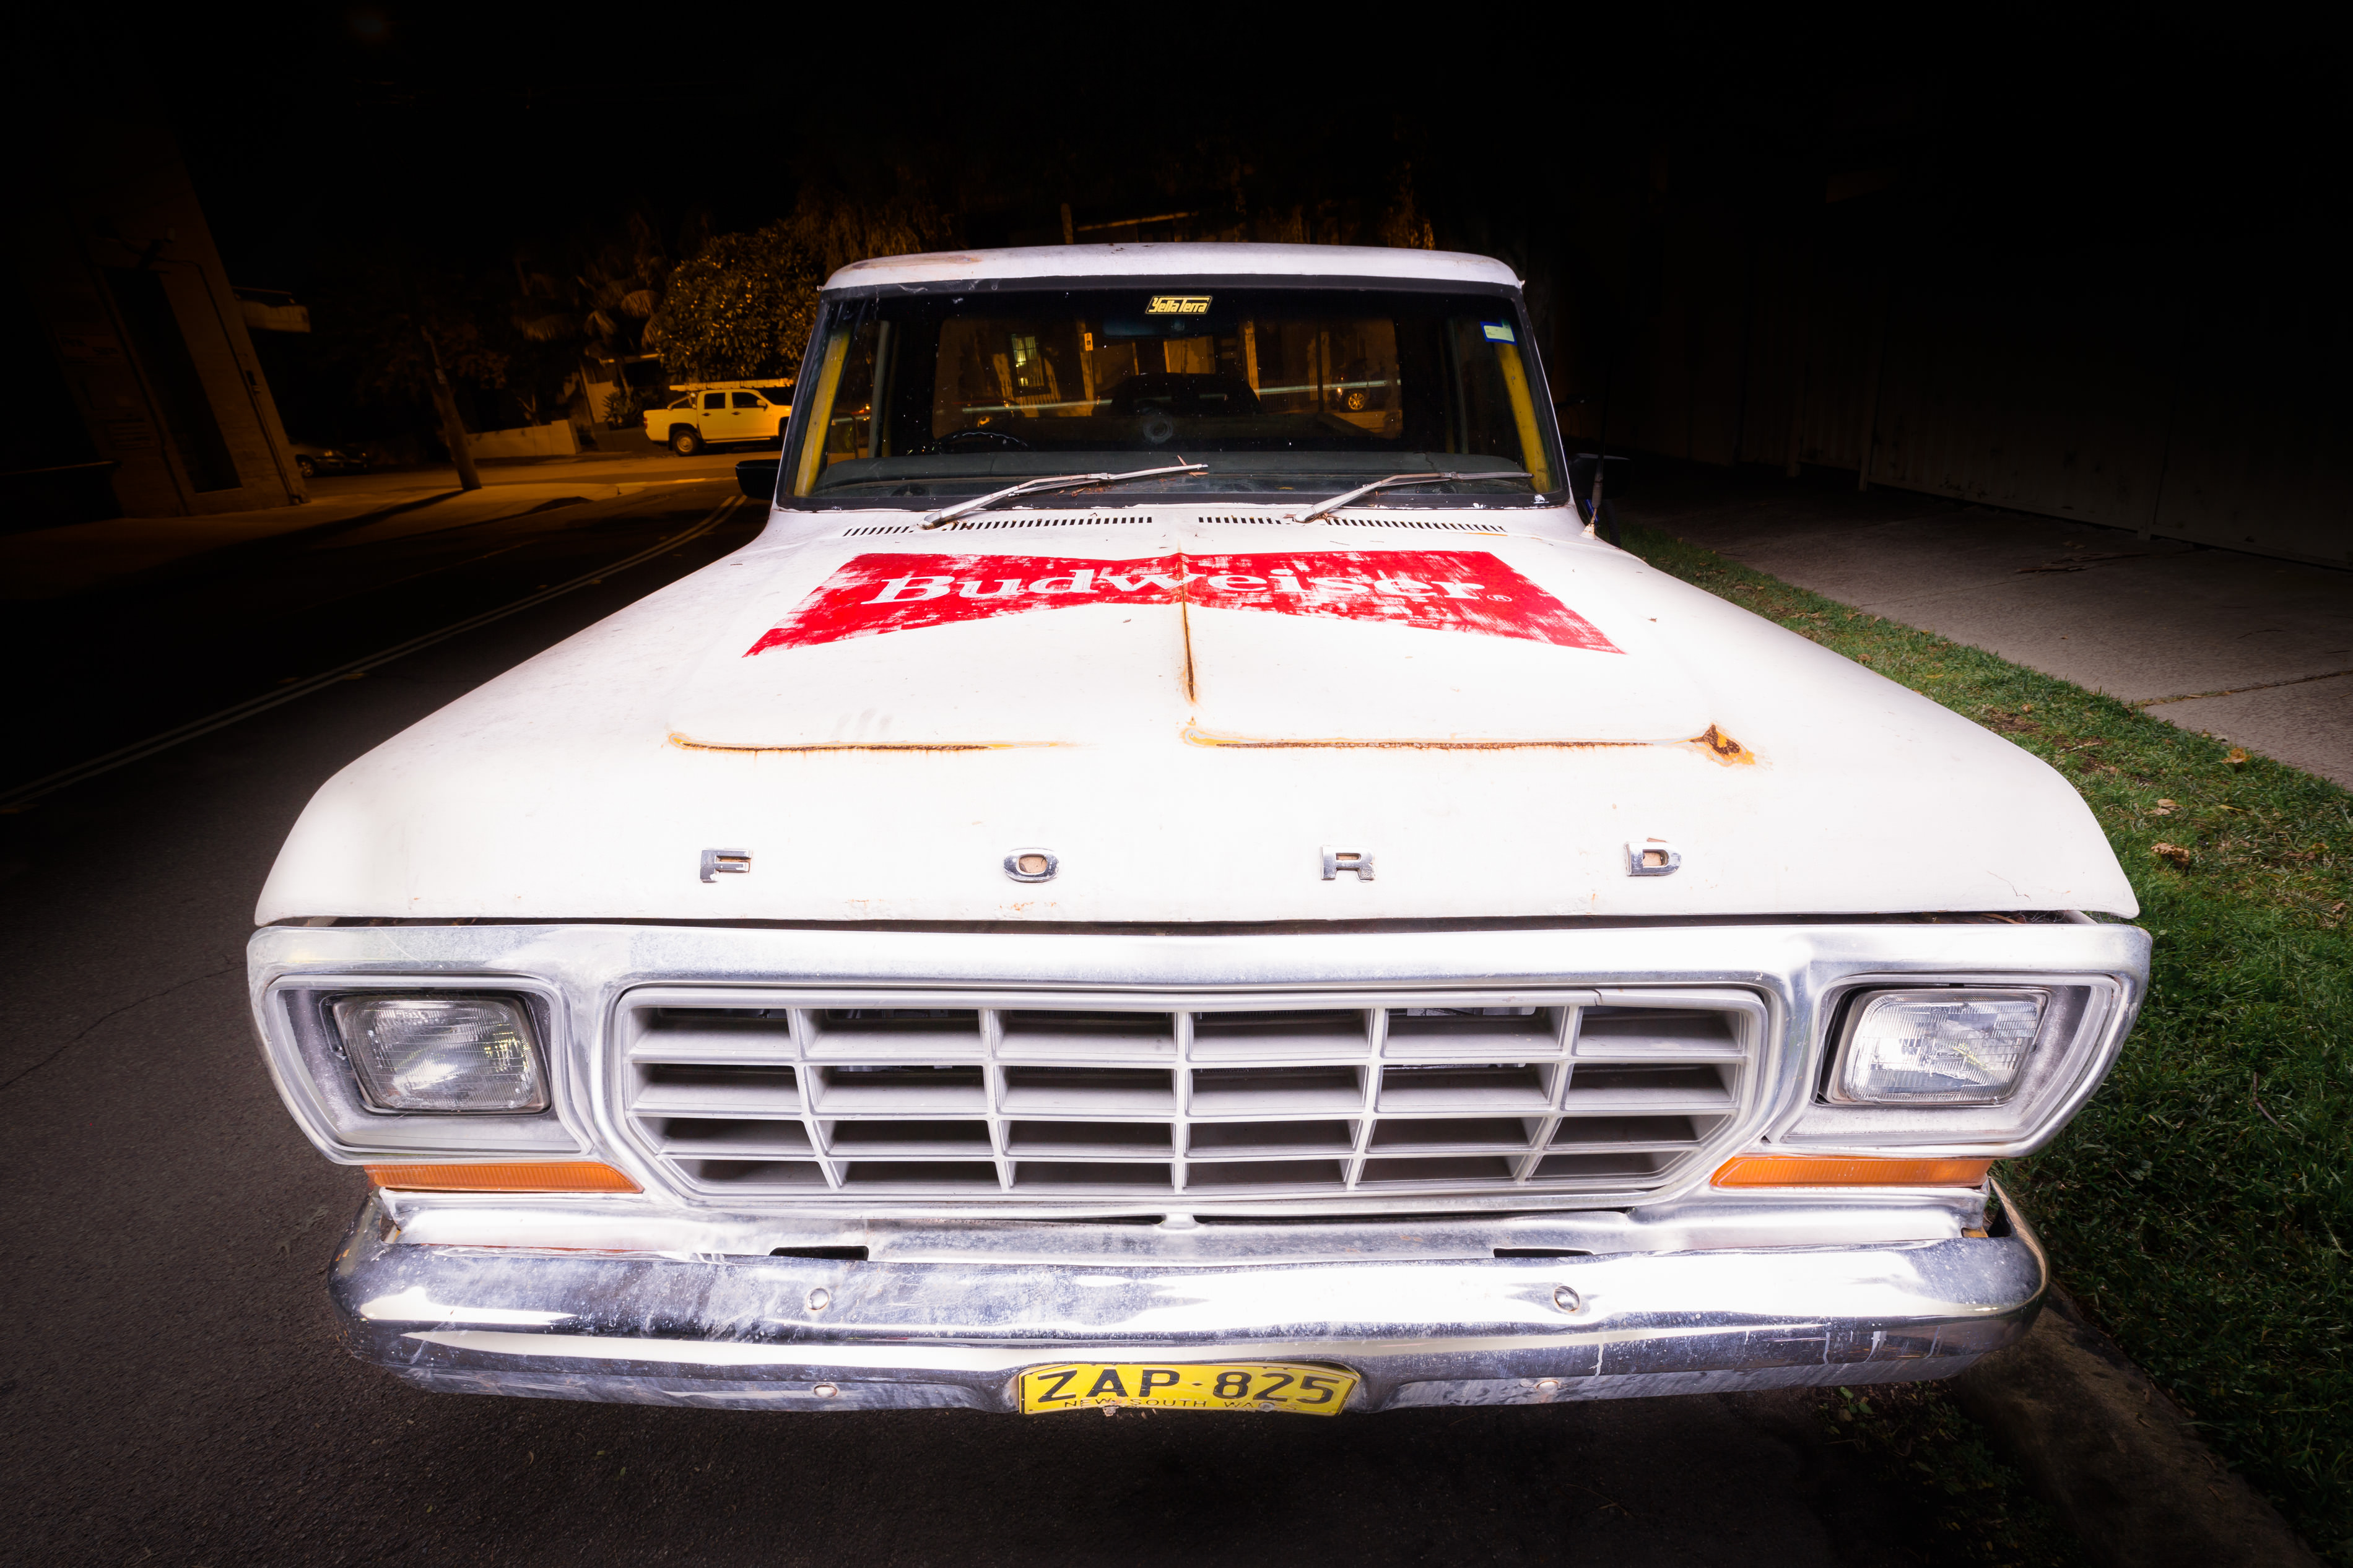 Budweiser Ford F150 Truck Long Exposure night automotive photography & light painting